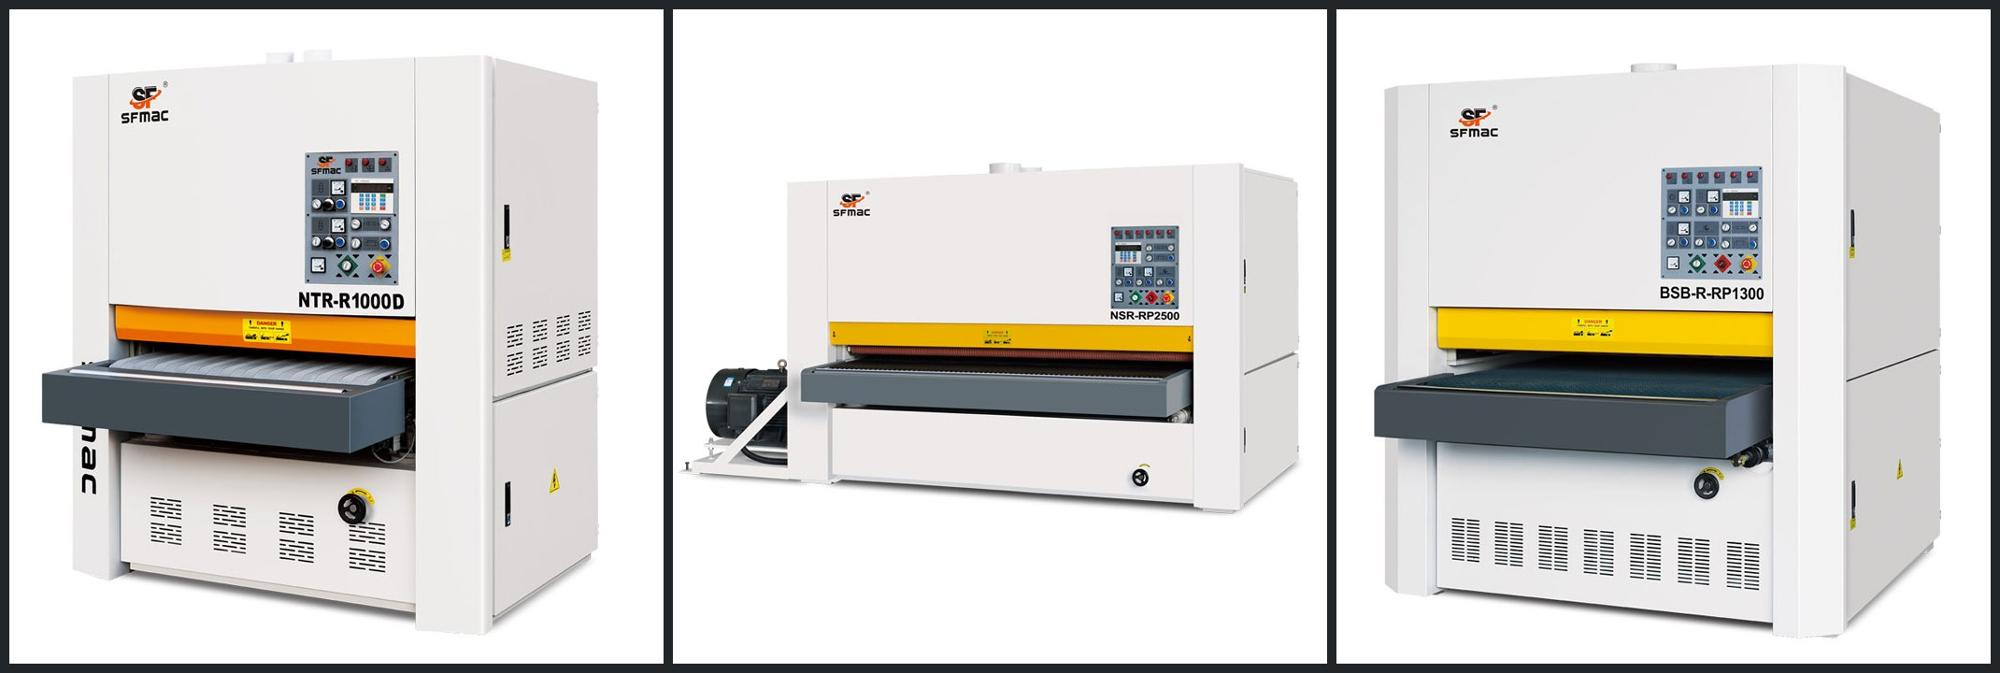 NTR-R1000D Qingdao Furniture solid wood composite board sanding machine